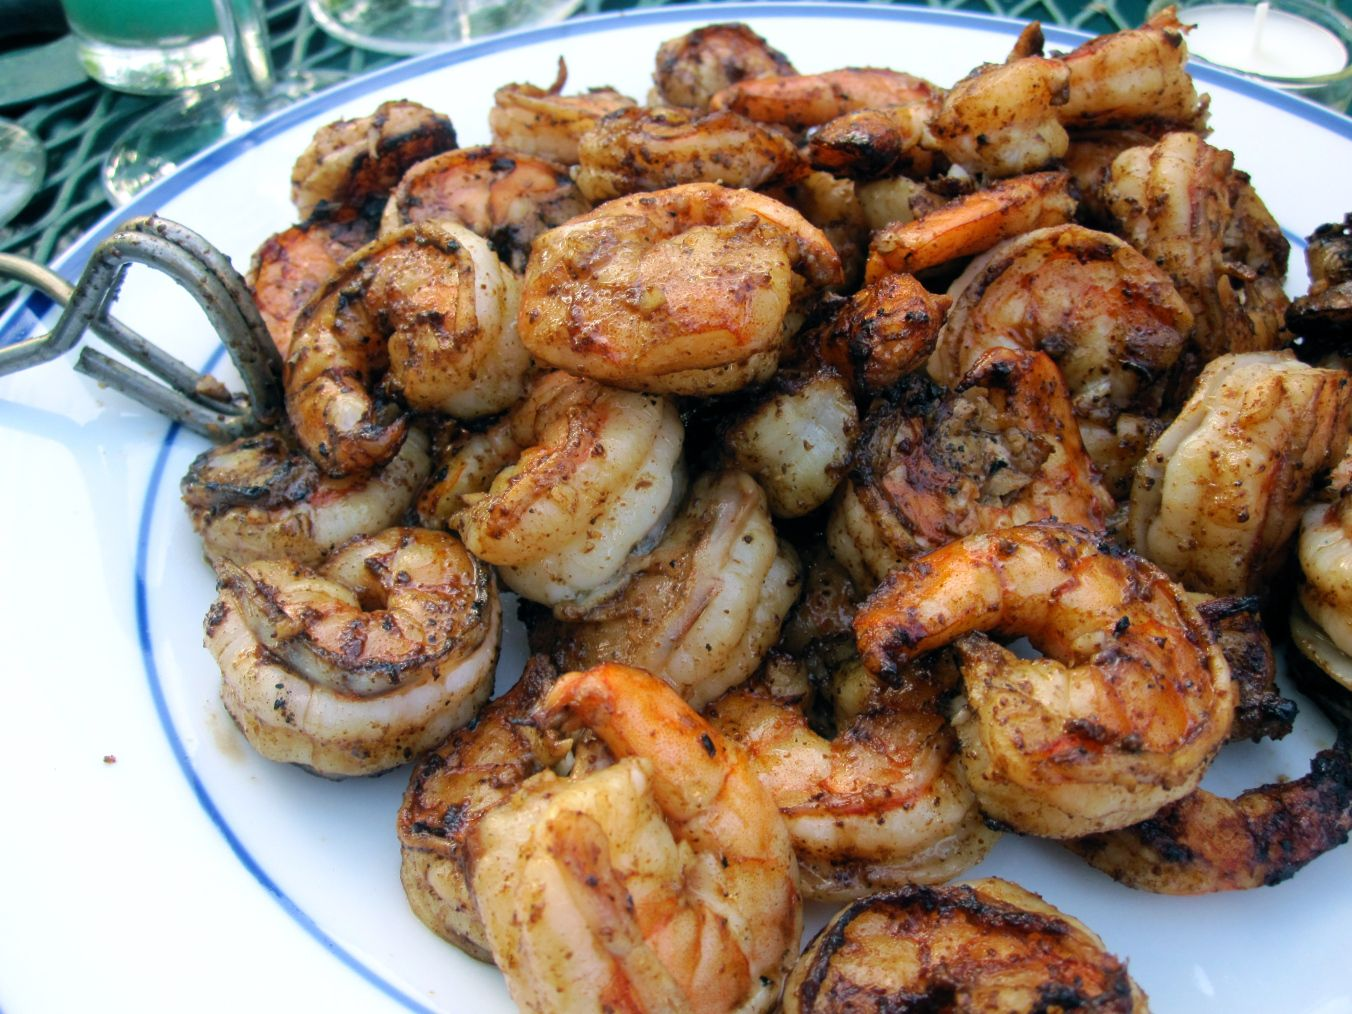 Grilled Shrimp with Old Bay #grilledshrimp